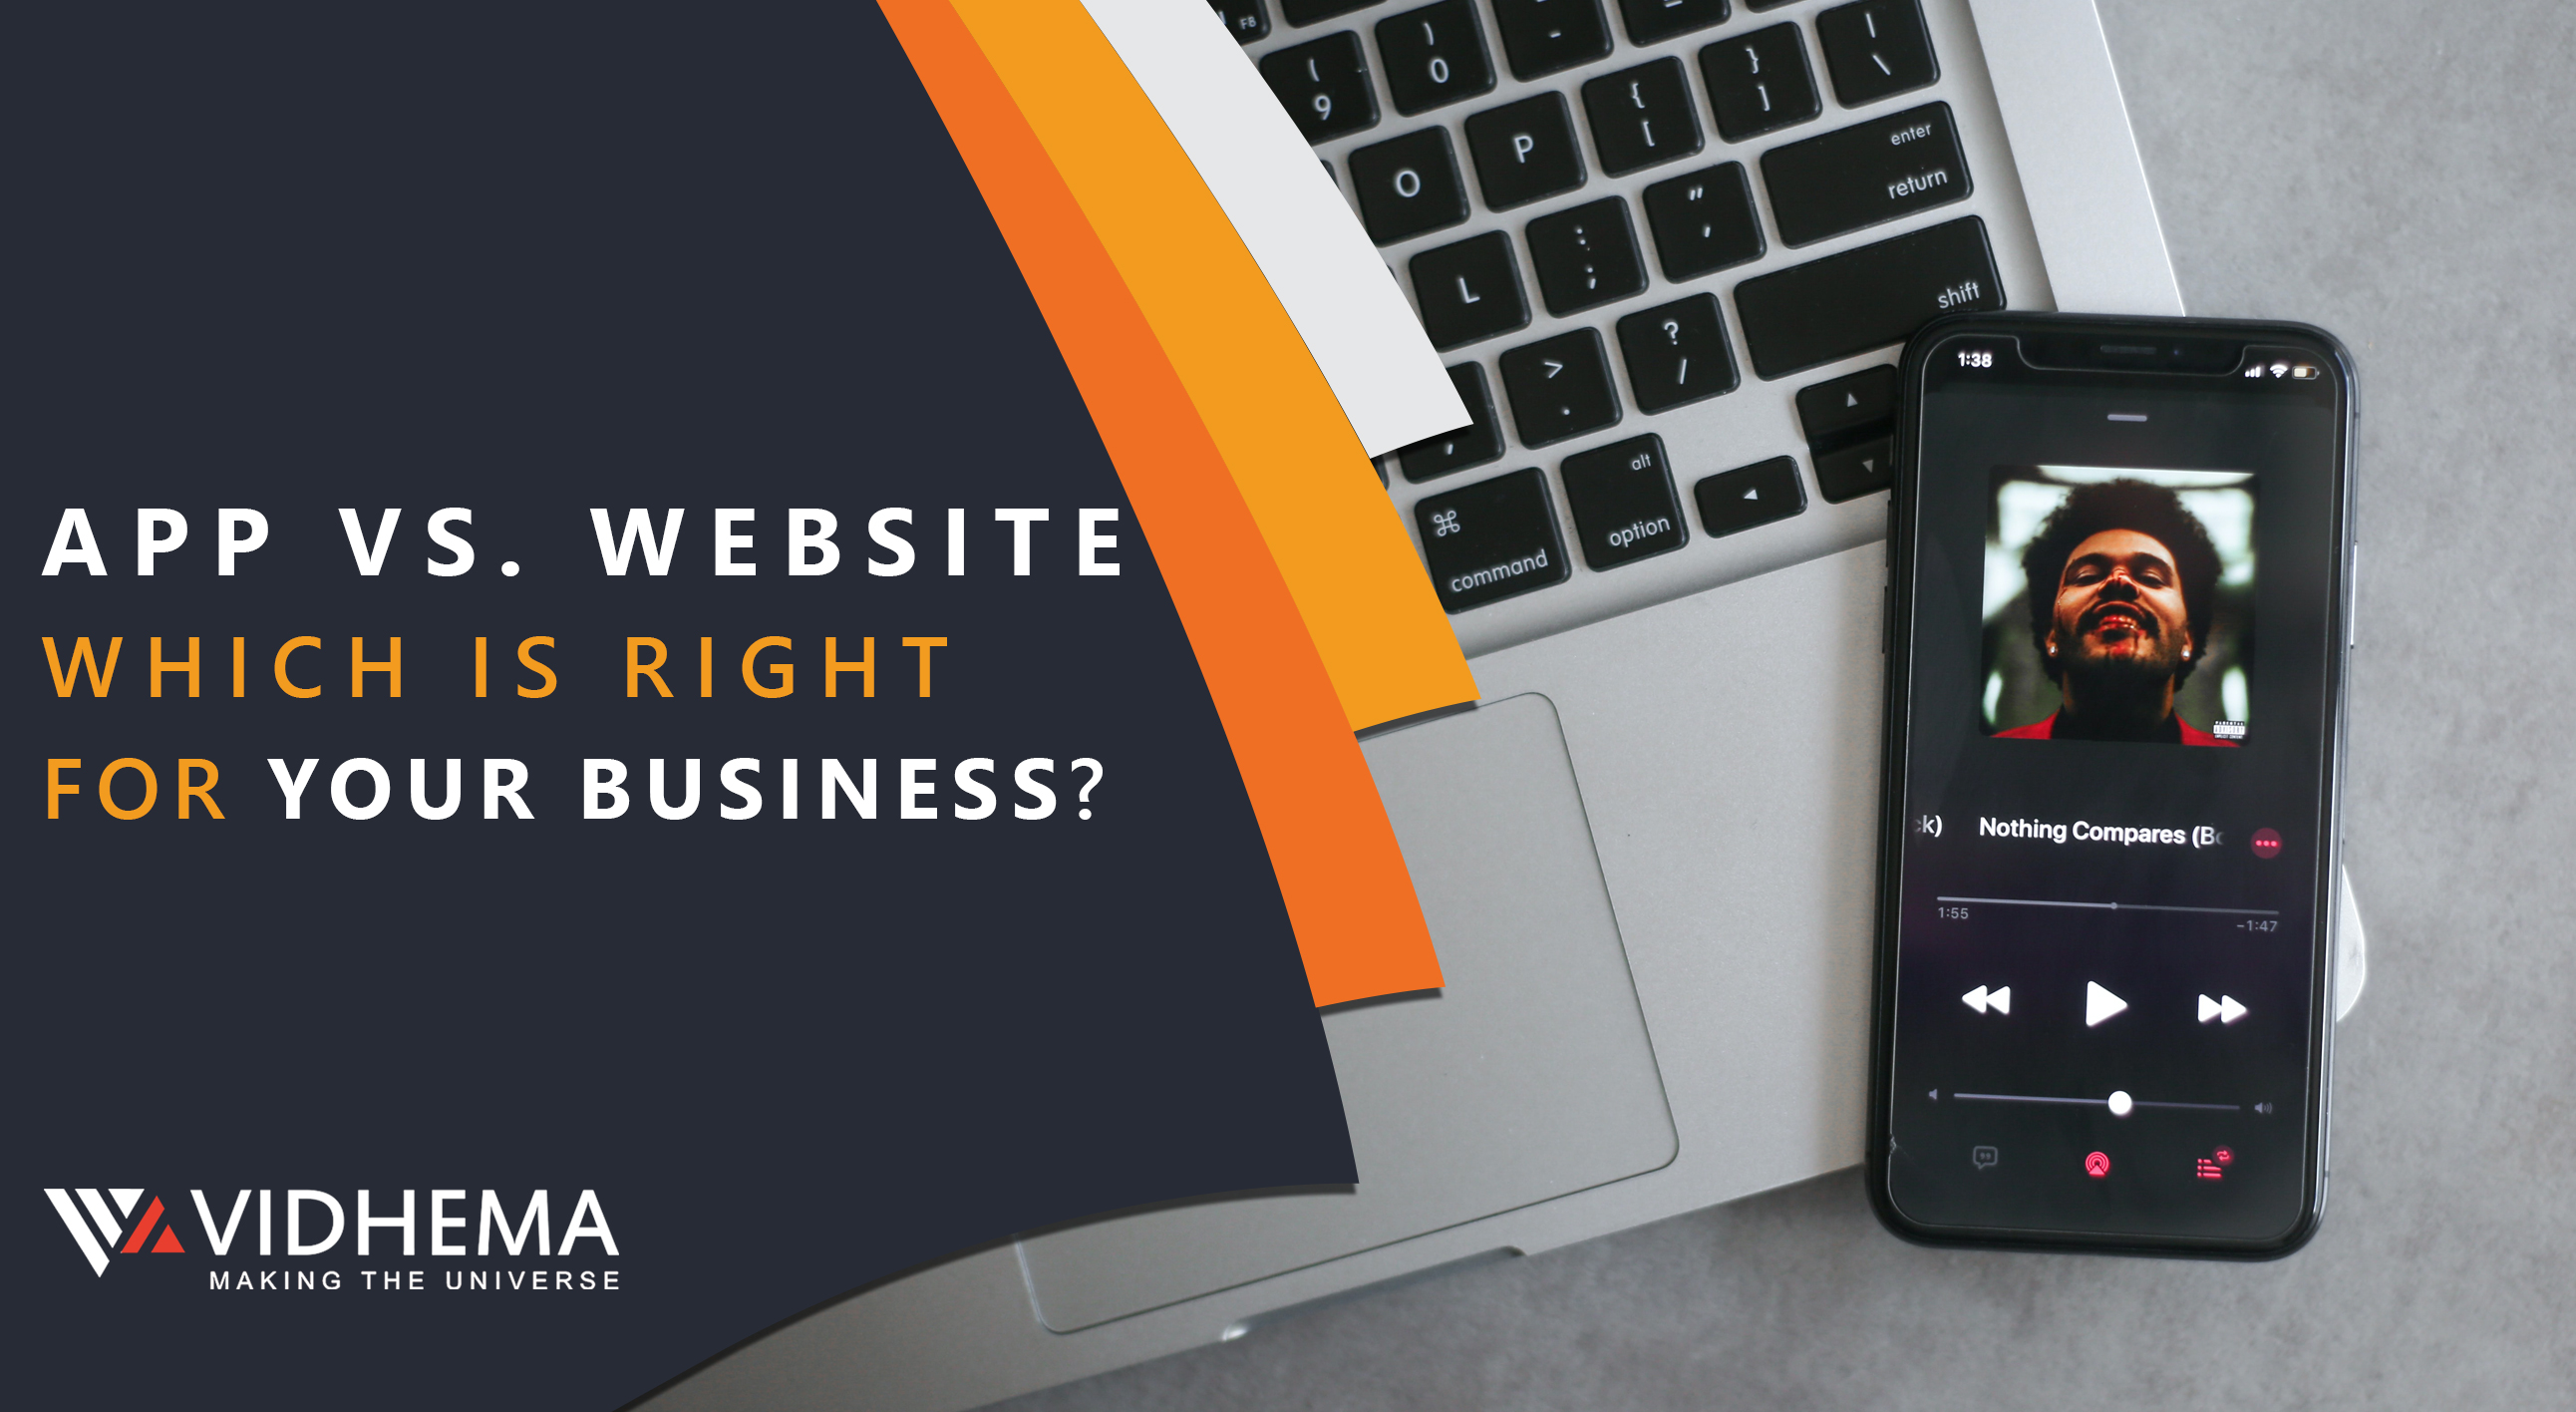 App vs. Website: Which is Right for Your Business?